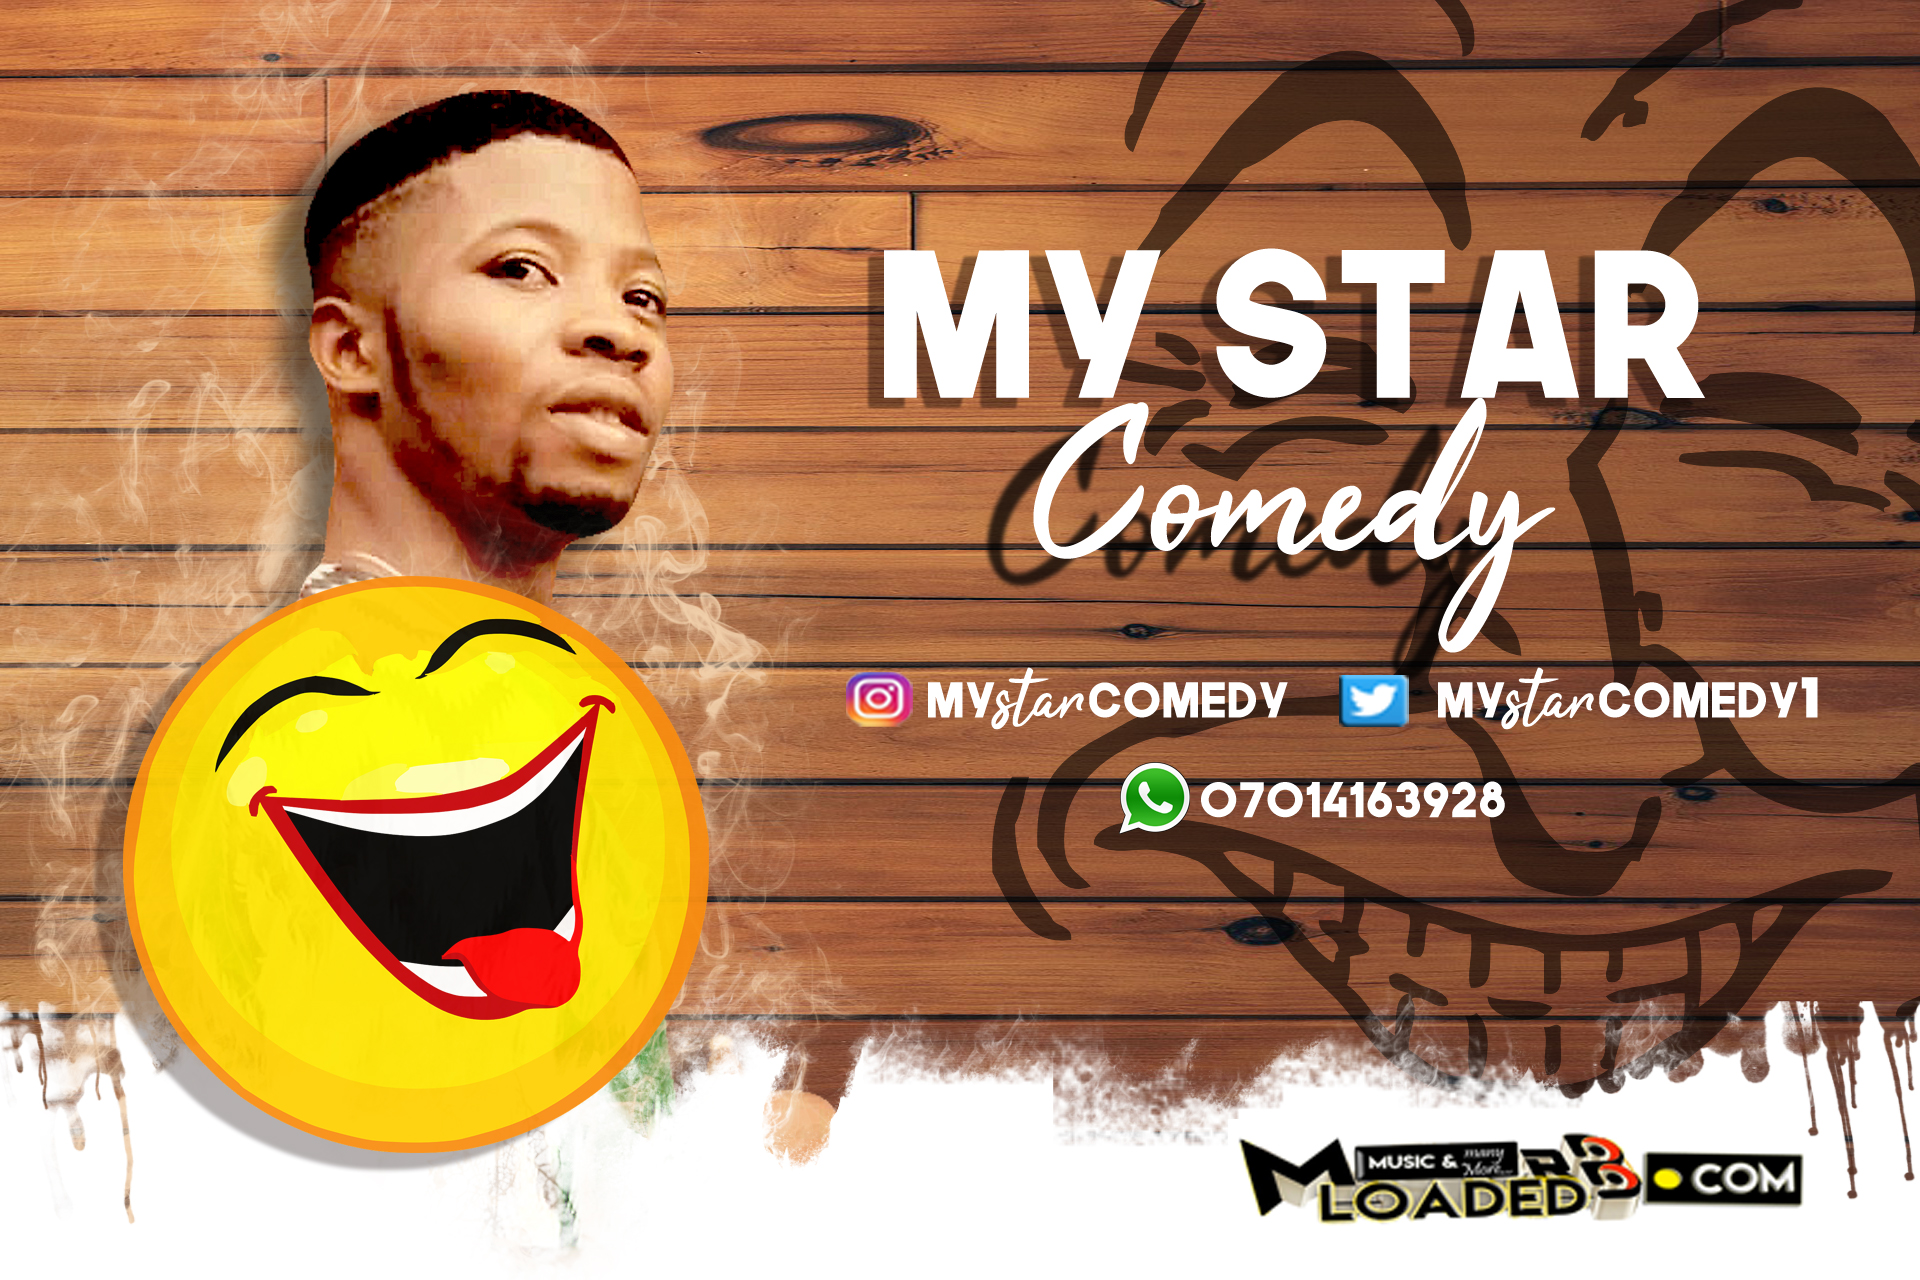 [Fan link]My star comedy – Our Comedy Videos